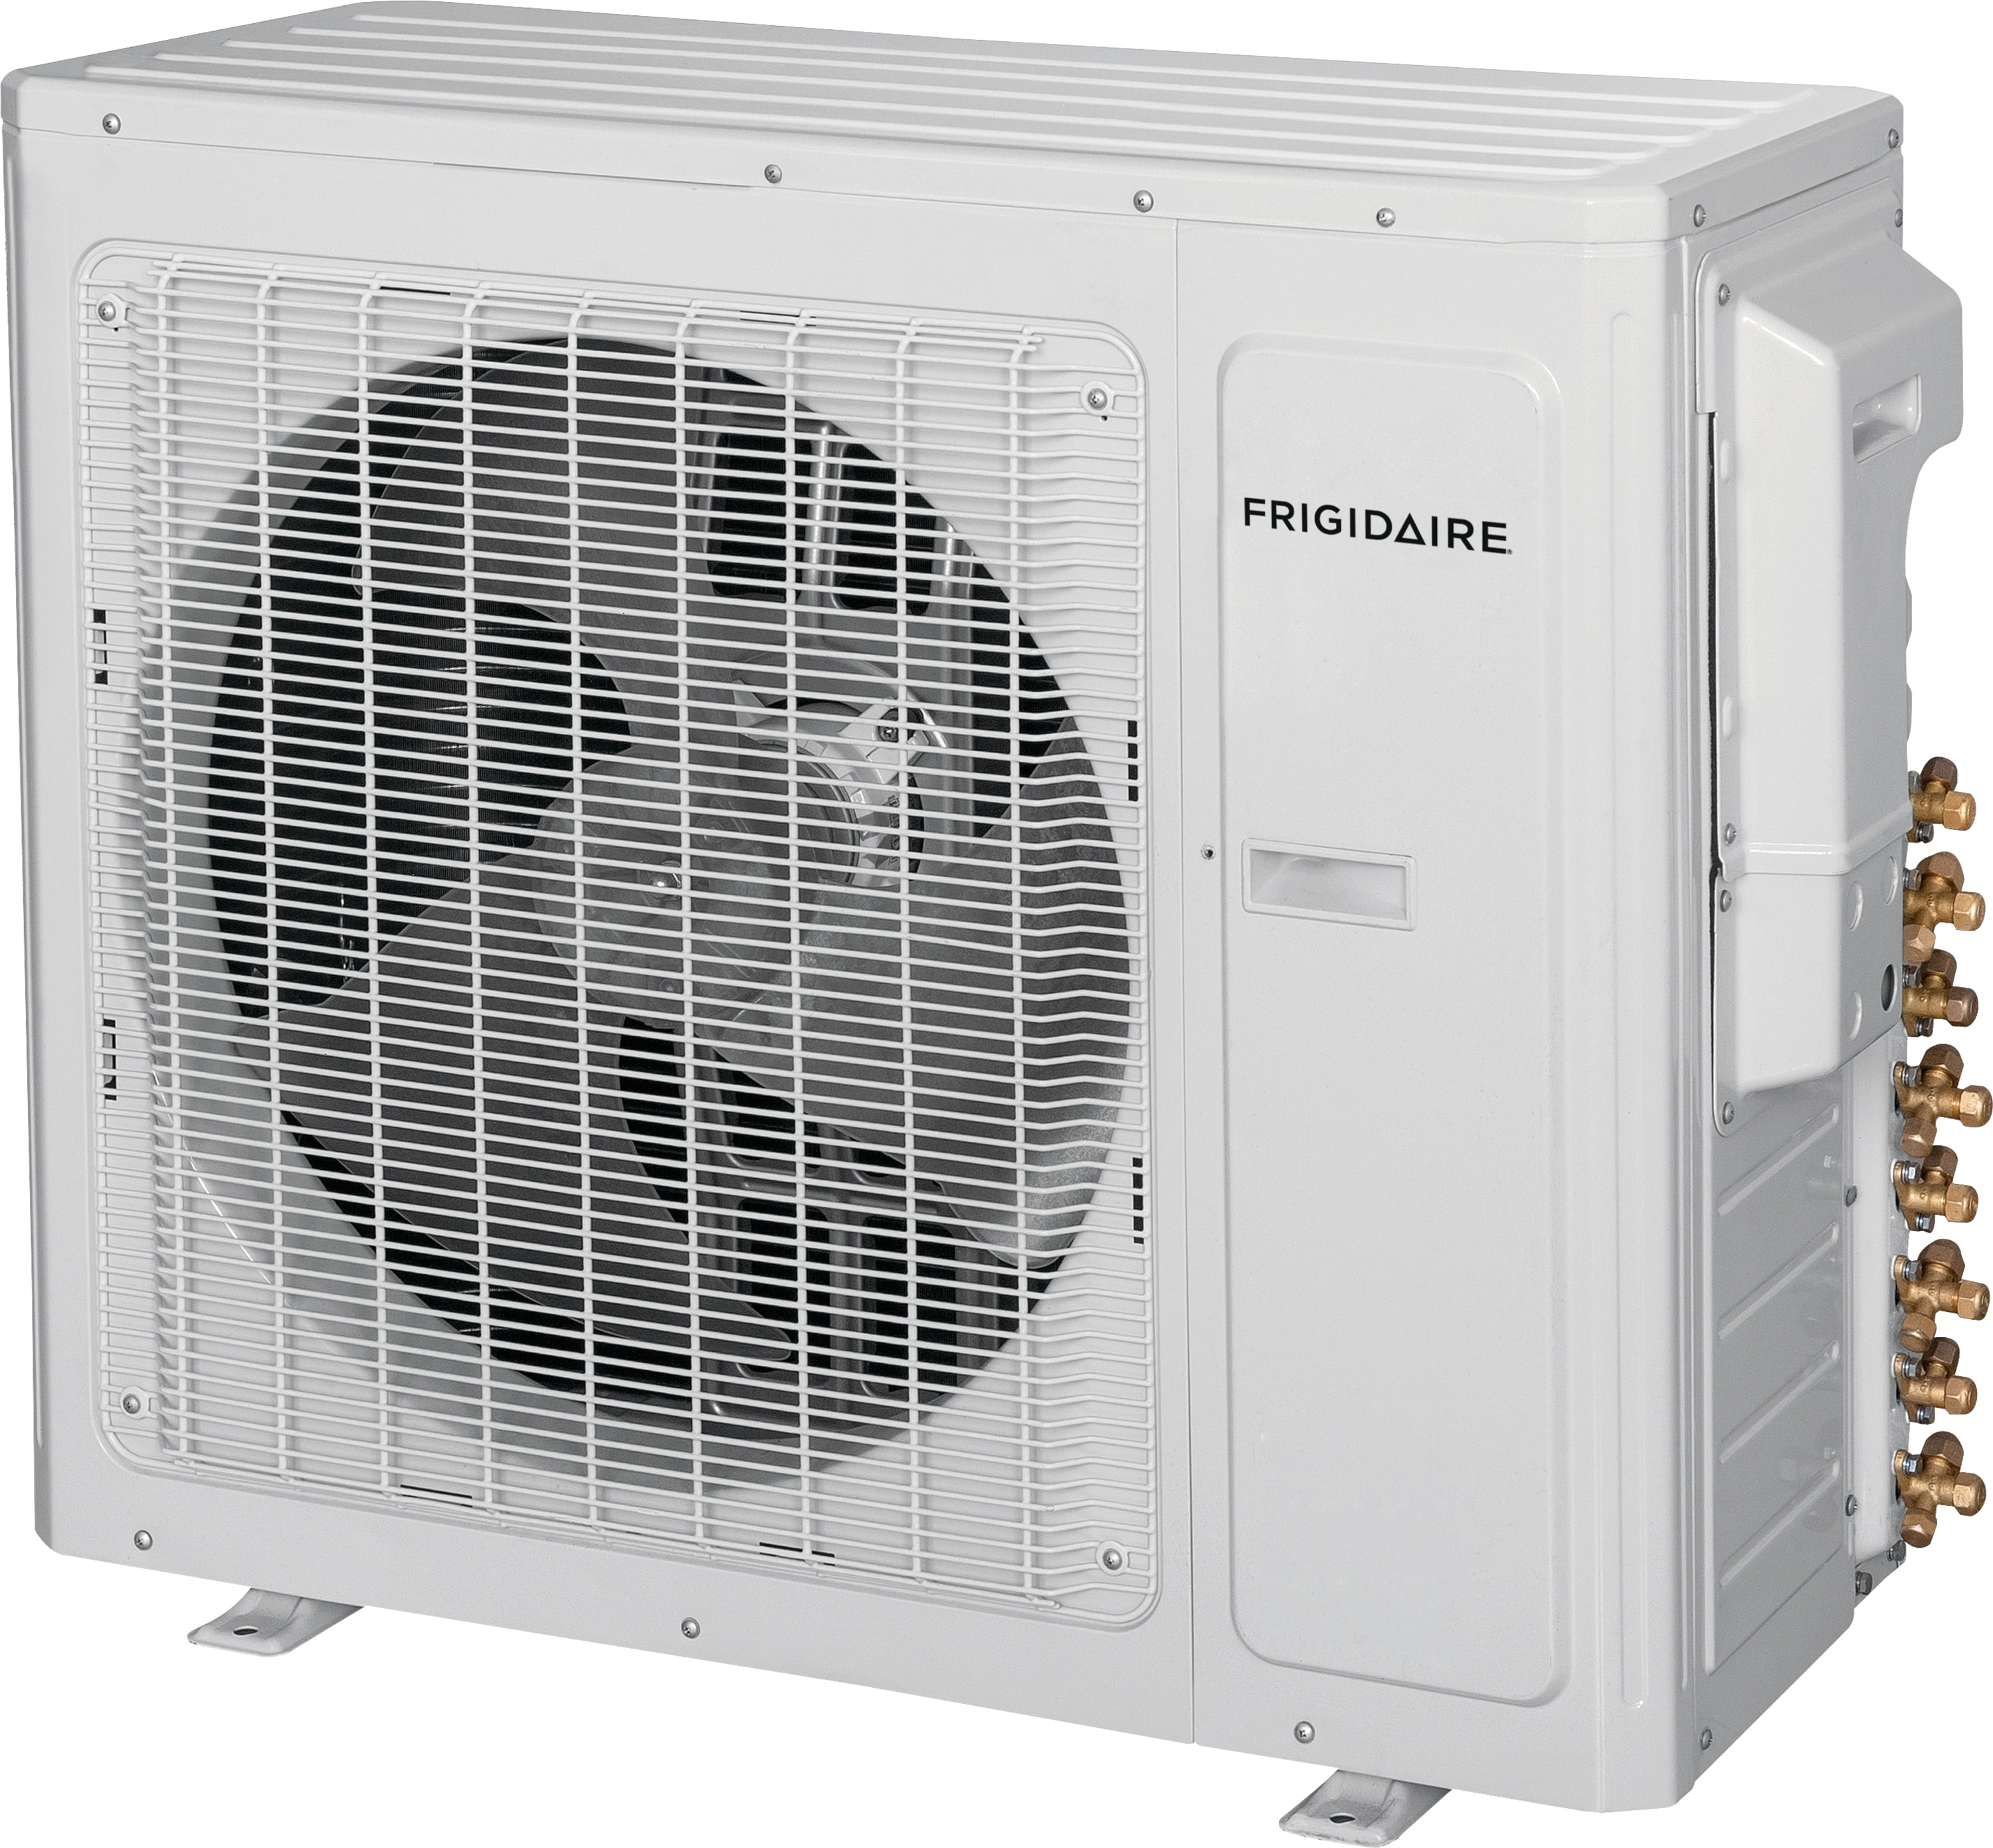 Ductless Split Air Conditioner with Heat Pump, 26,000btu 208/230volt